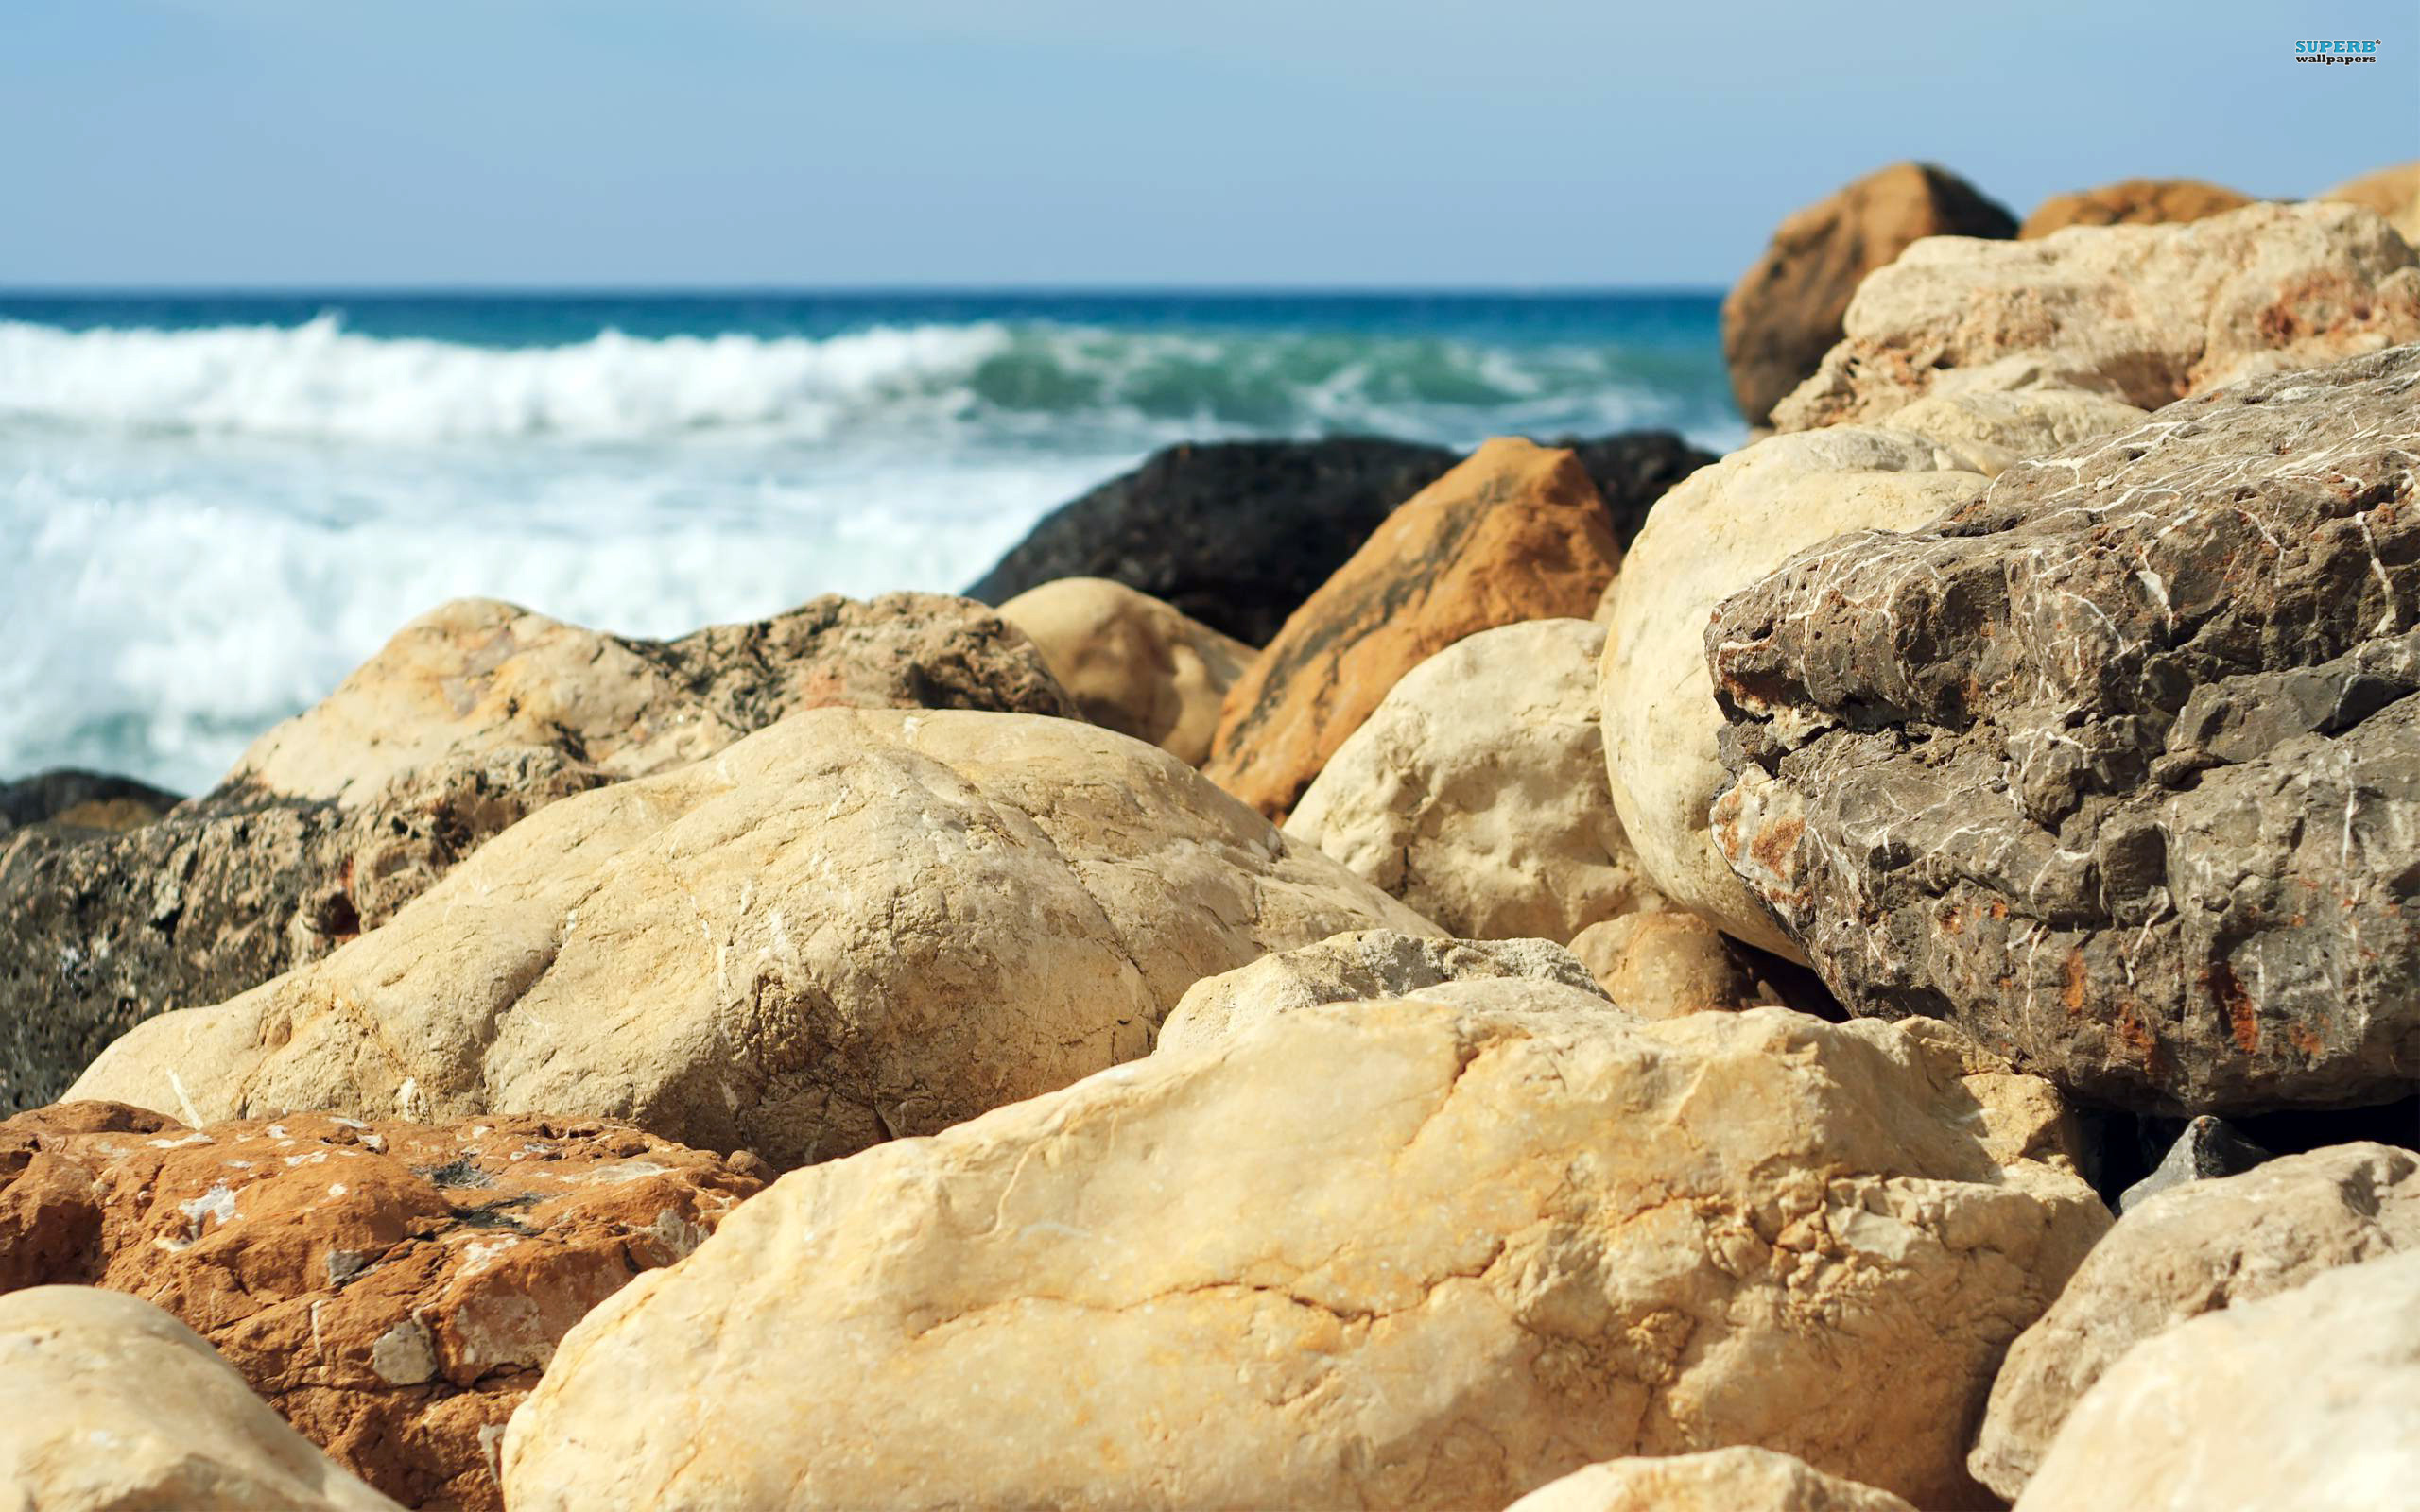 Cool Beach Rocks Wallpaper 34591 1920x1080 px